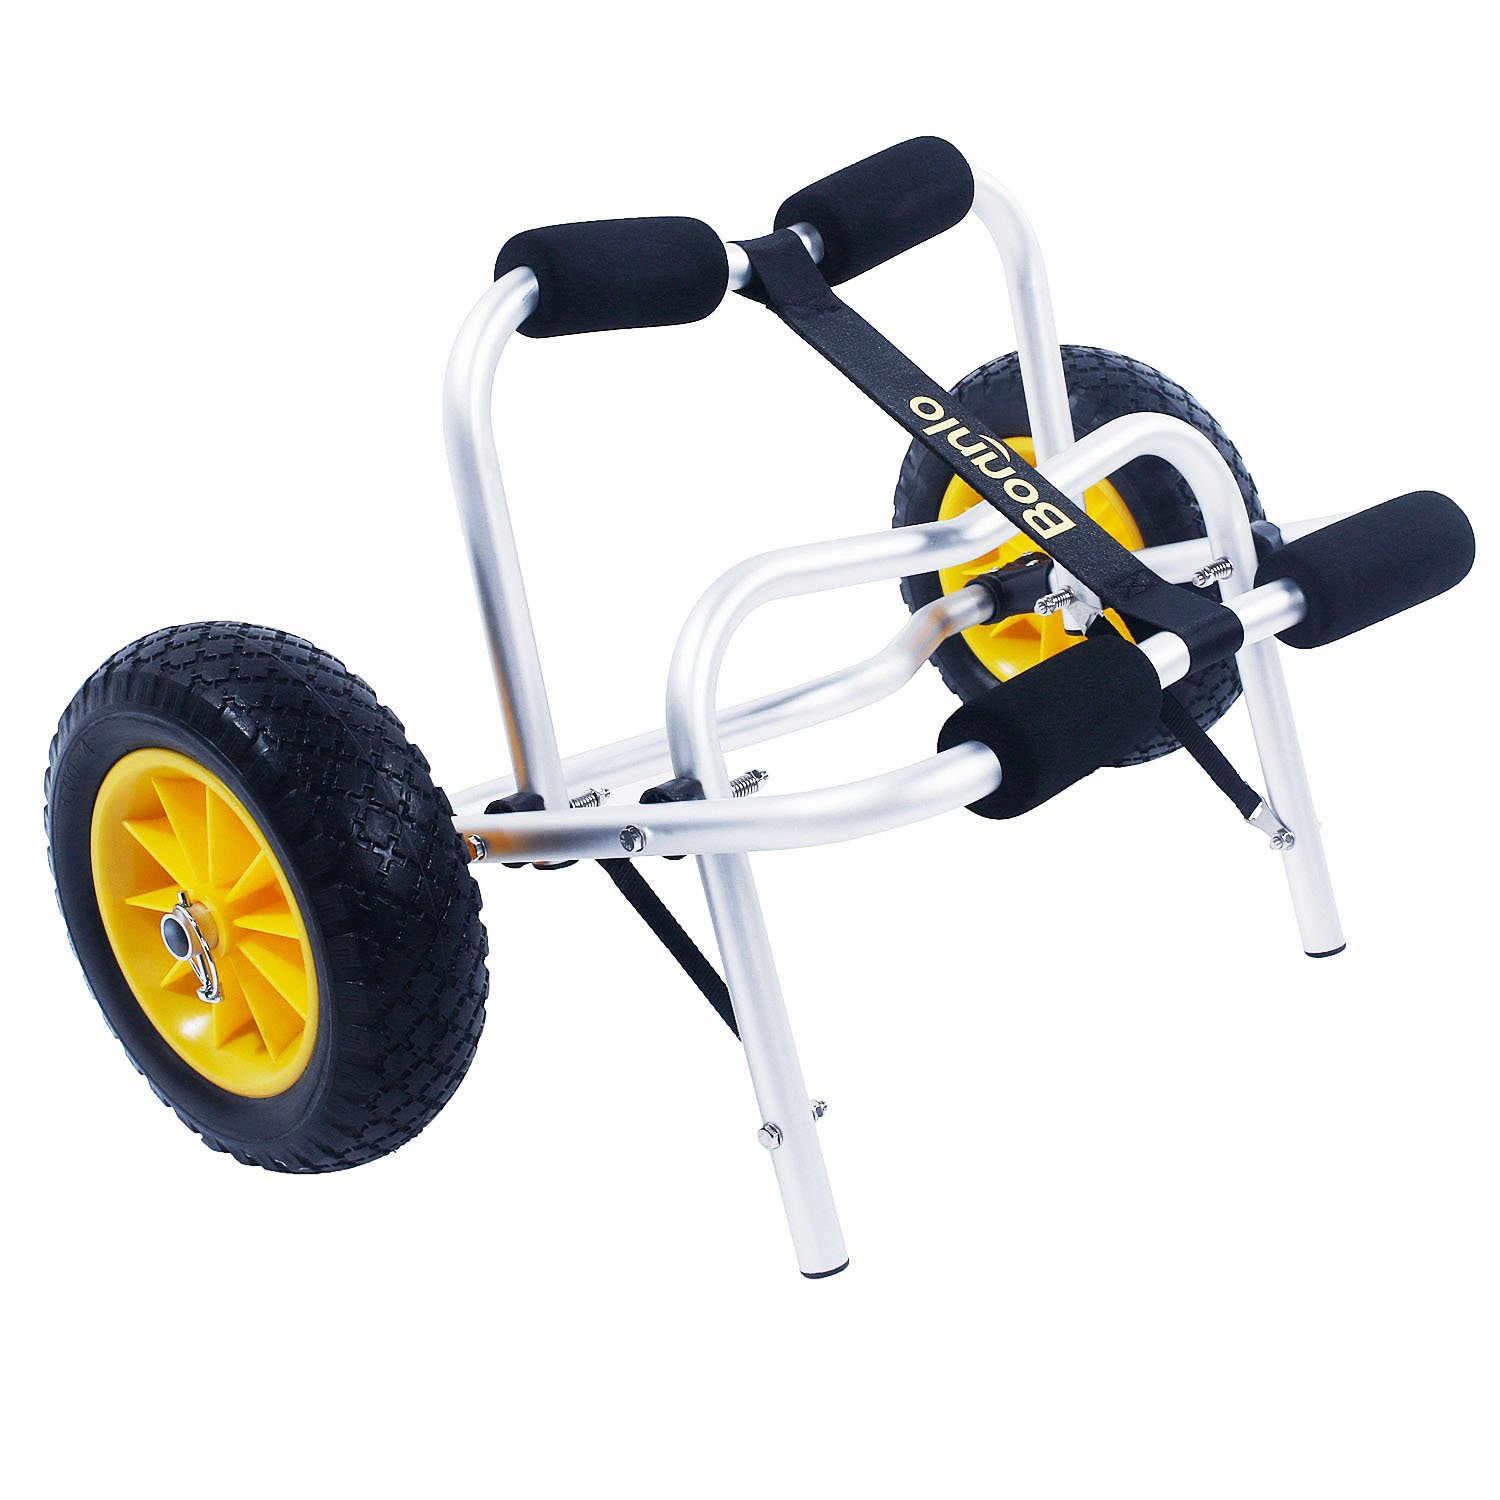 Bonnlo Boat Kayak Canoe Cart Carrier Dolly Trailer Tote Trolley Transport with Inflation-free Solid Tires Wheel